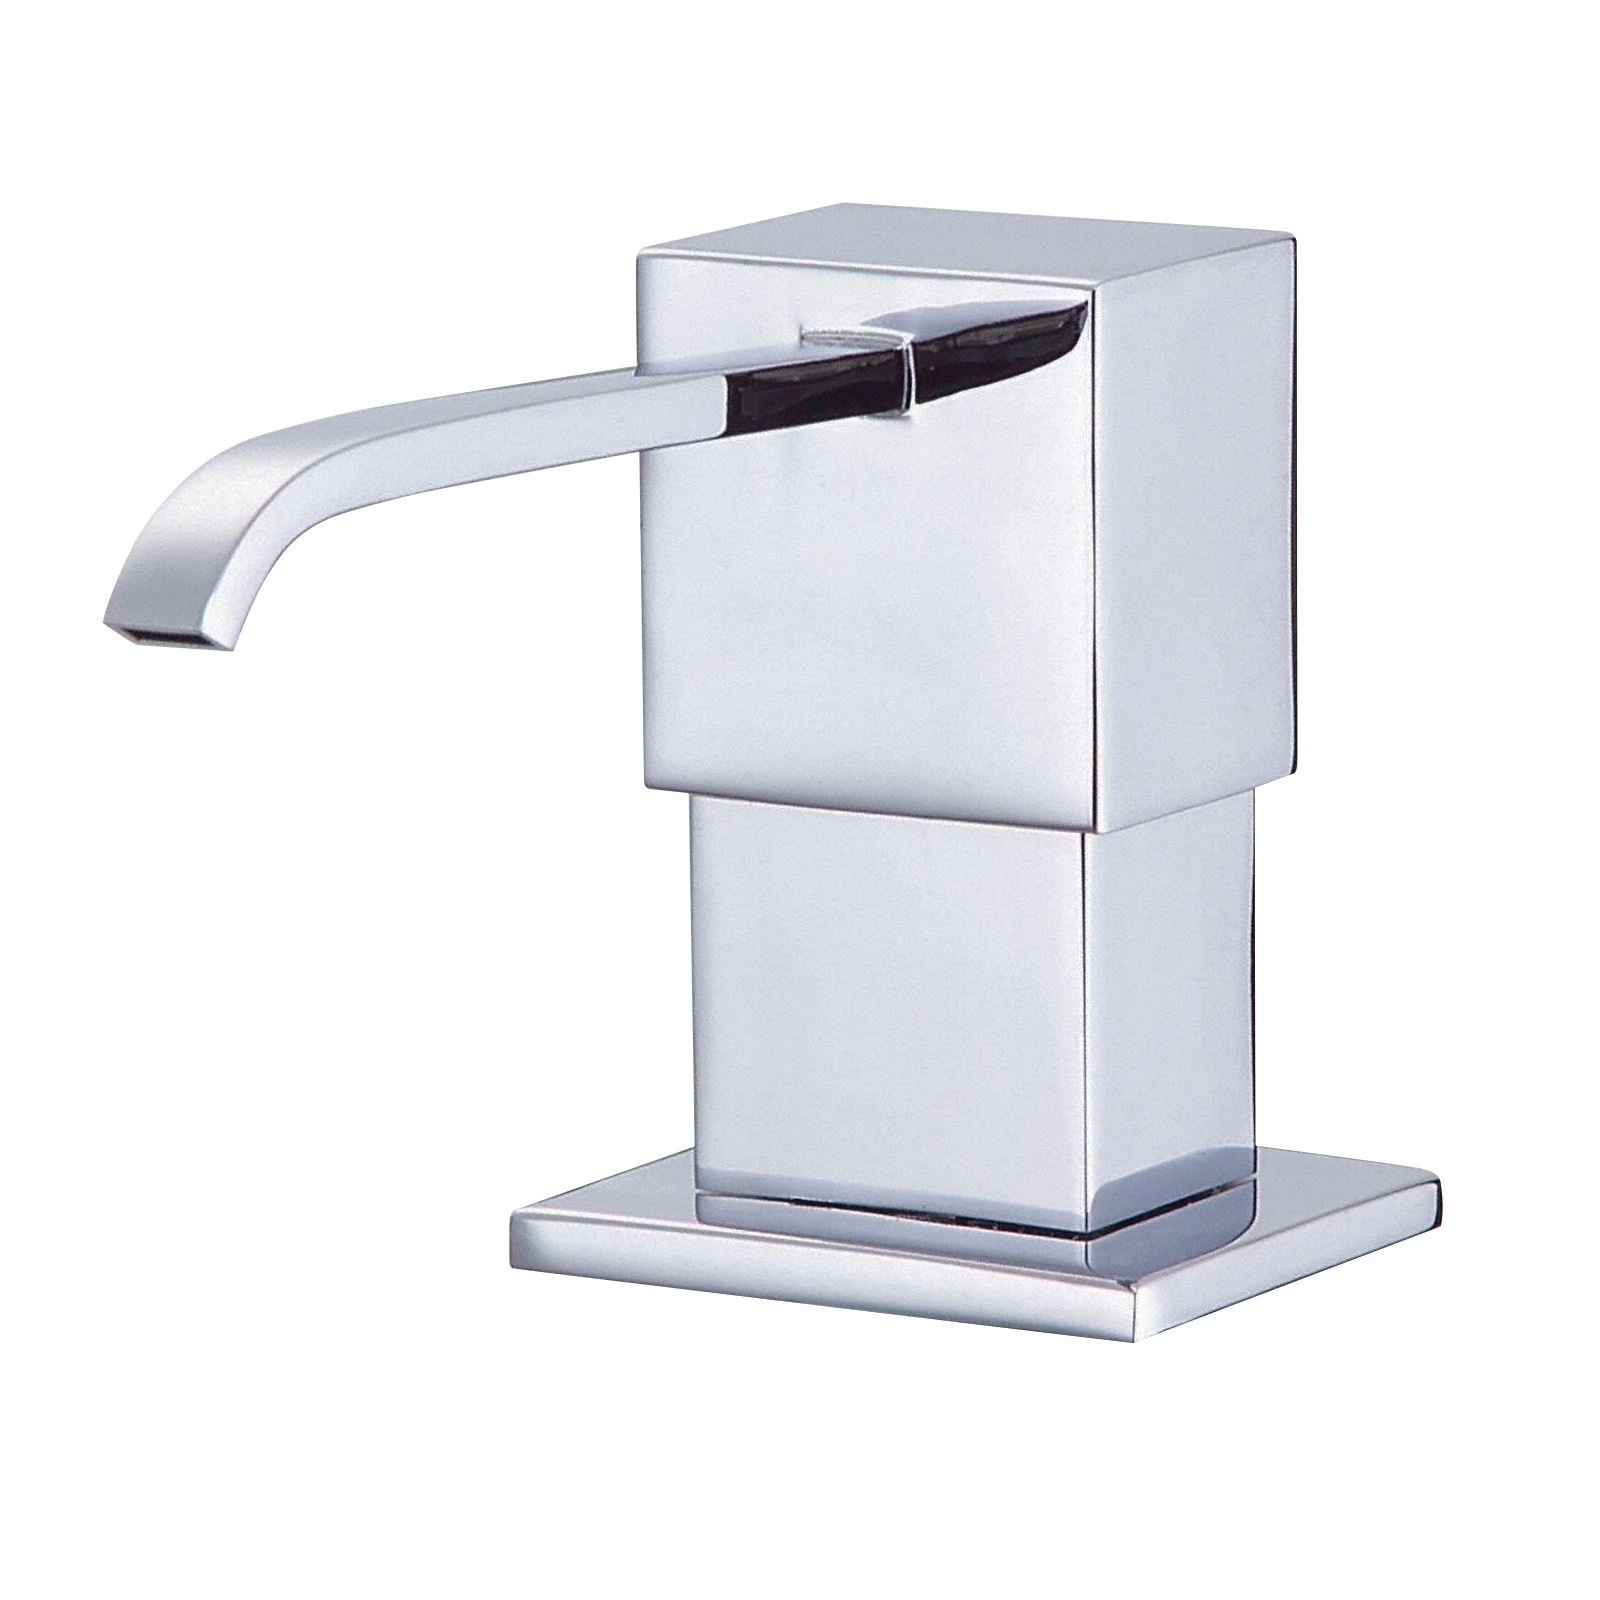 Danze® D495944 Sirius® Soap and Lotion Dispenser, Deck Mount, Solid Brass, Polished Chrome